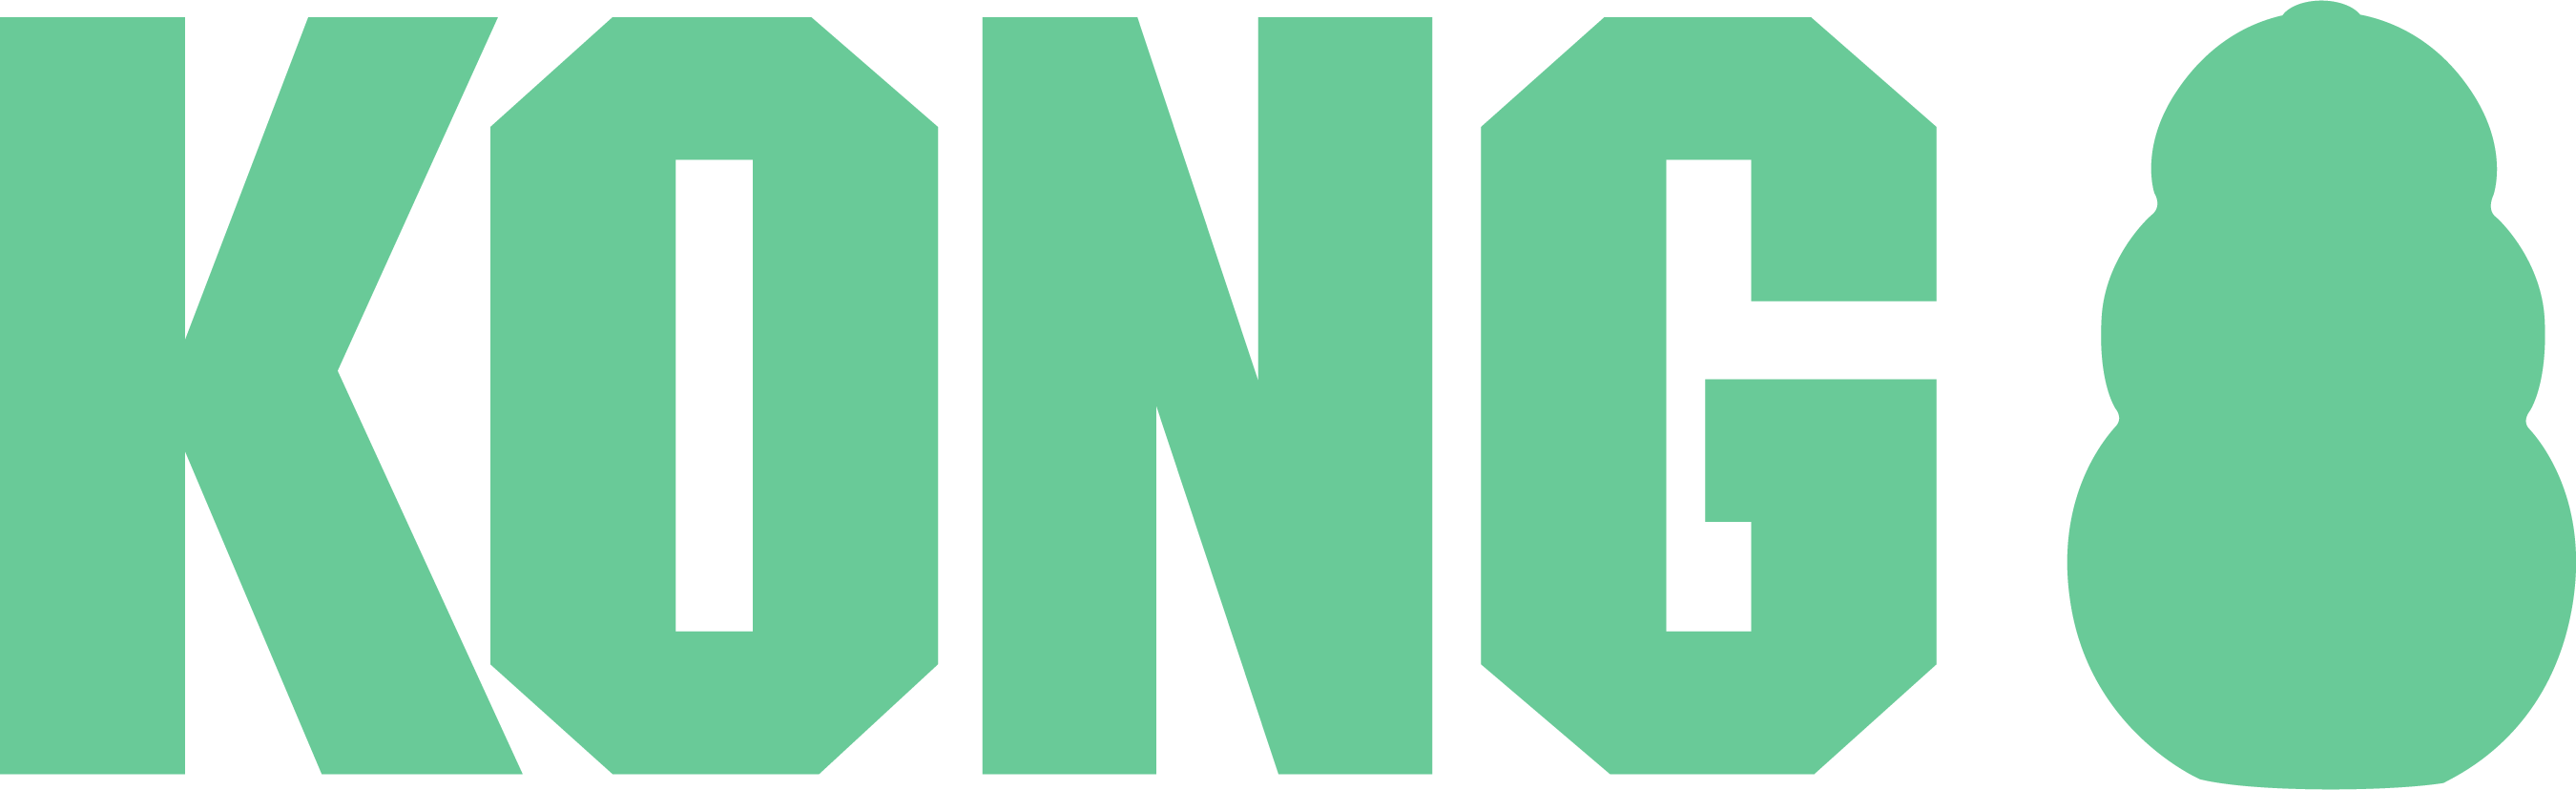 Kong logo in green